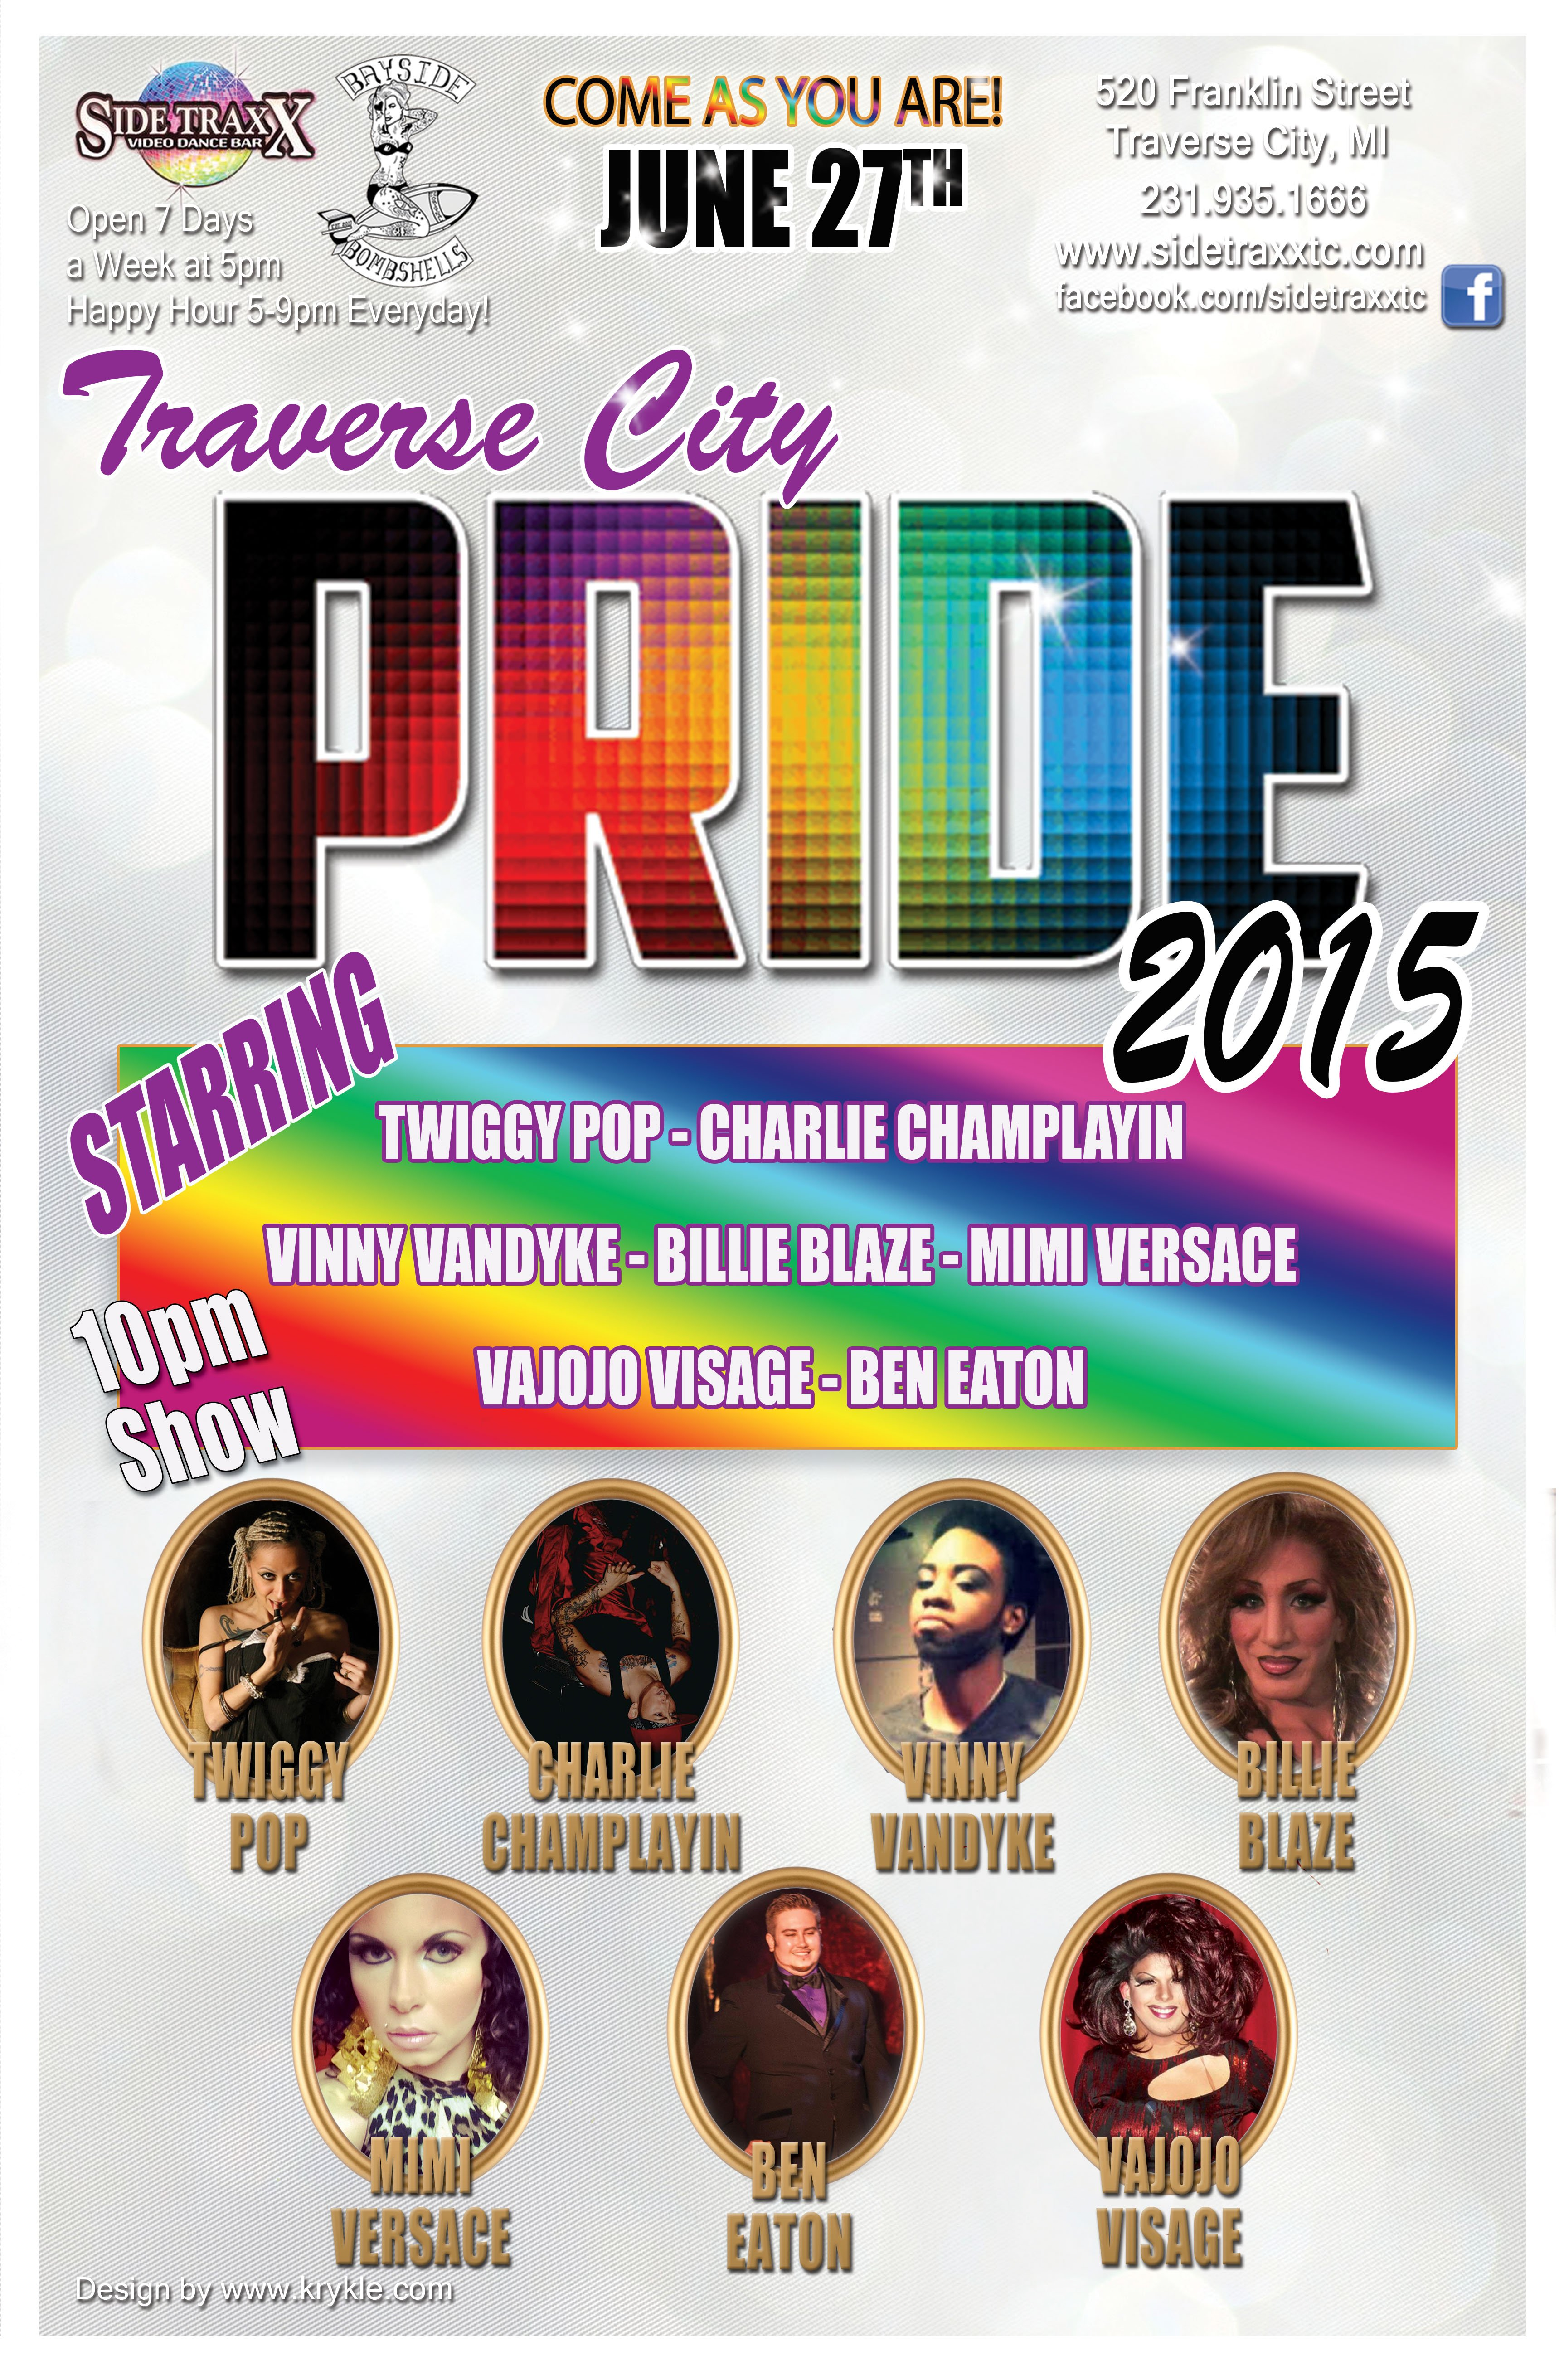 Official Up North Pride After Party! Drag Show 10pm - Saturday June 27, 2015